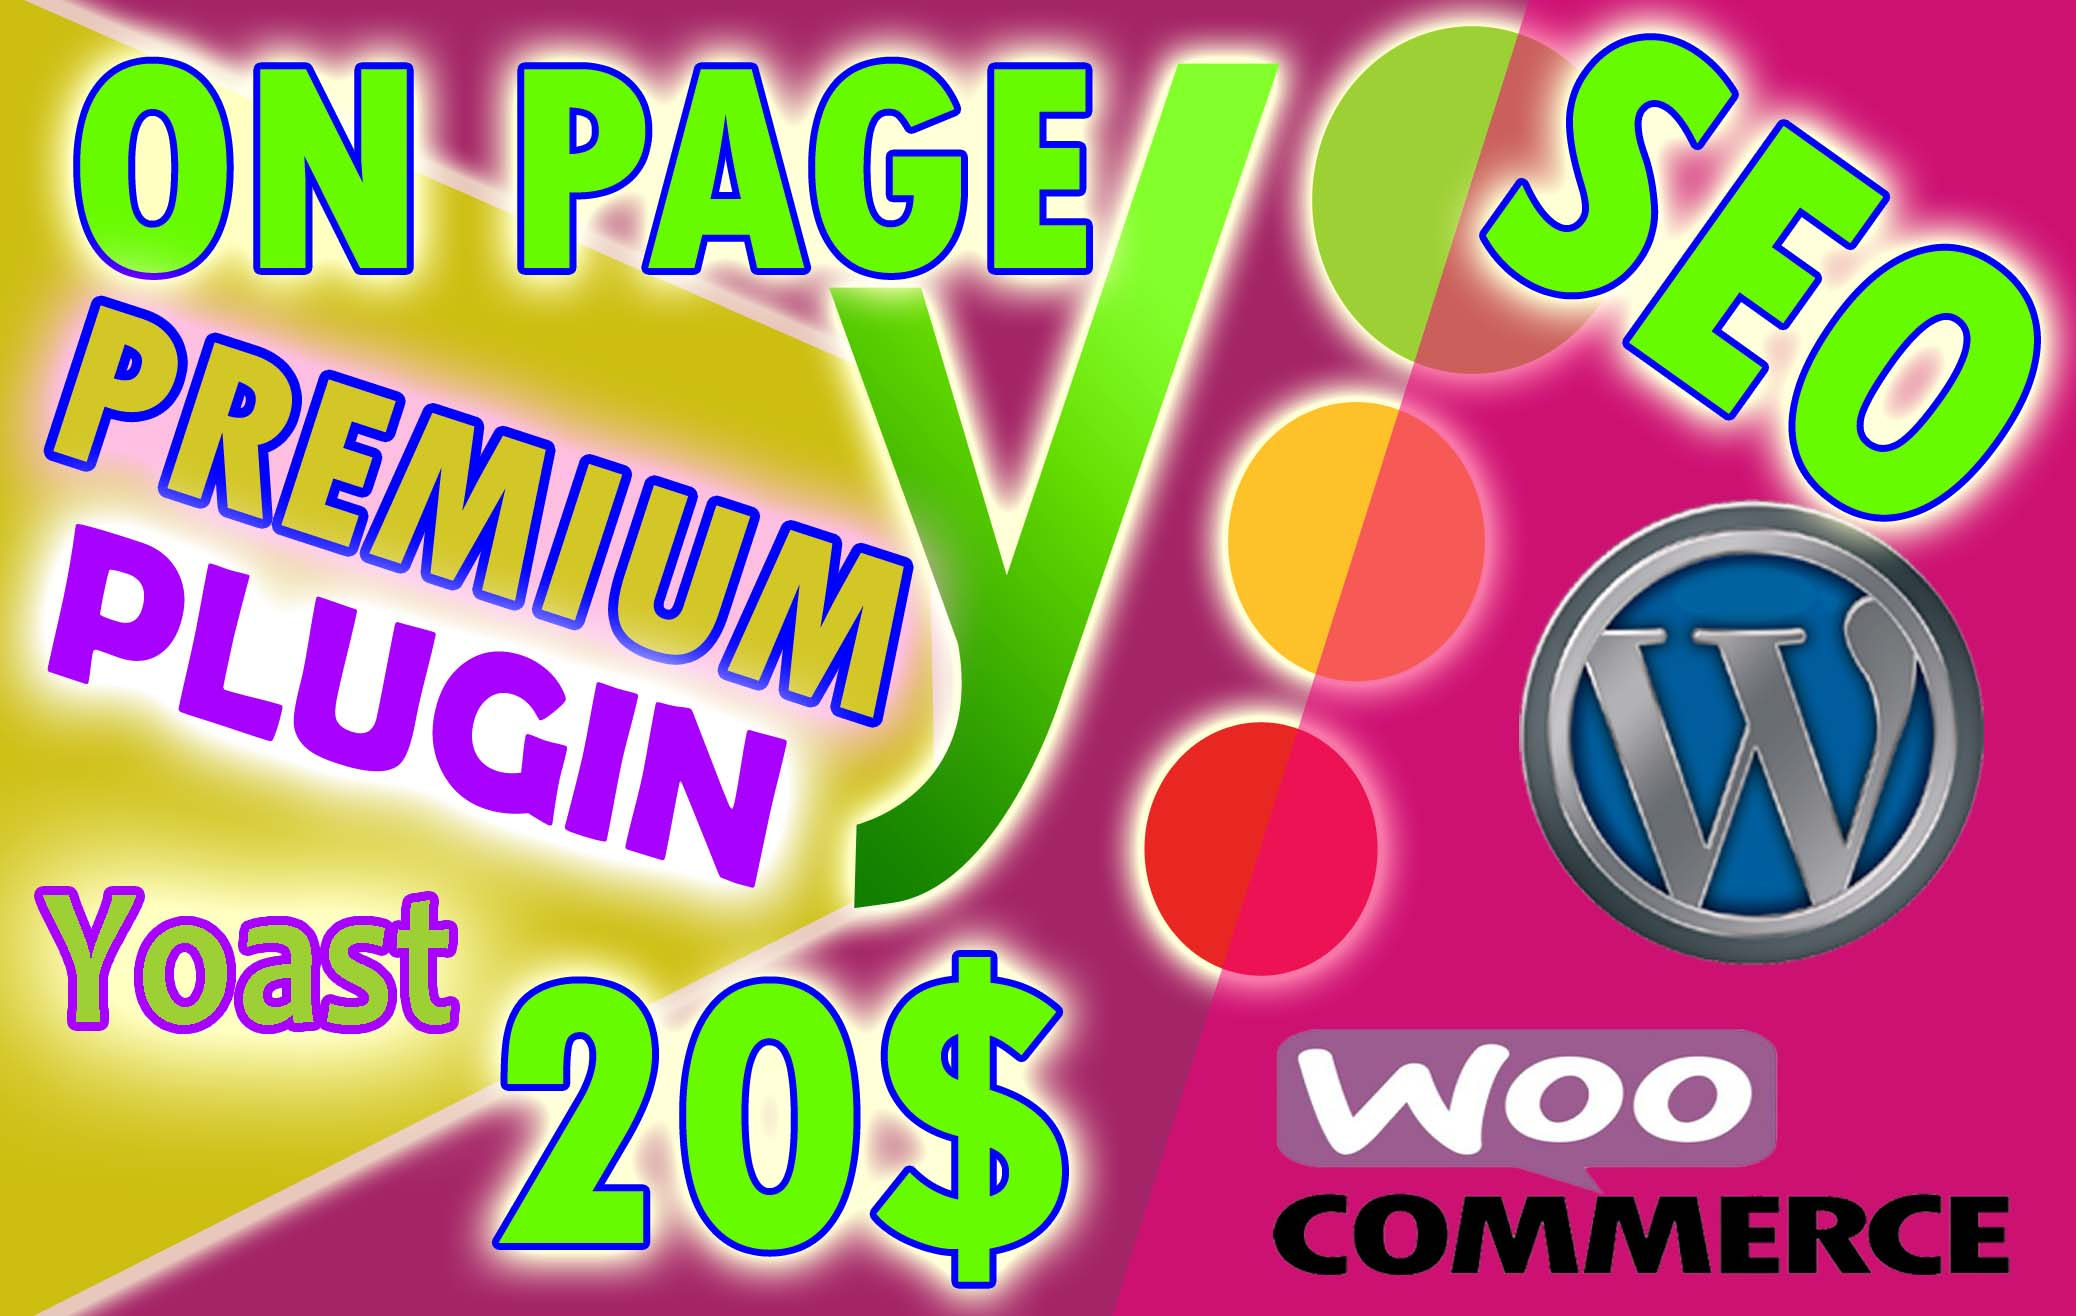 I will do yoast premium onpage technical SEO on page optimization of wordpress website